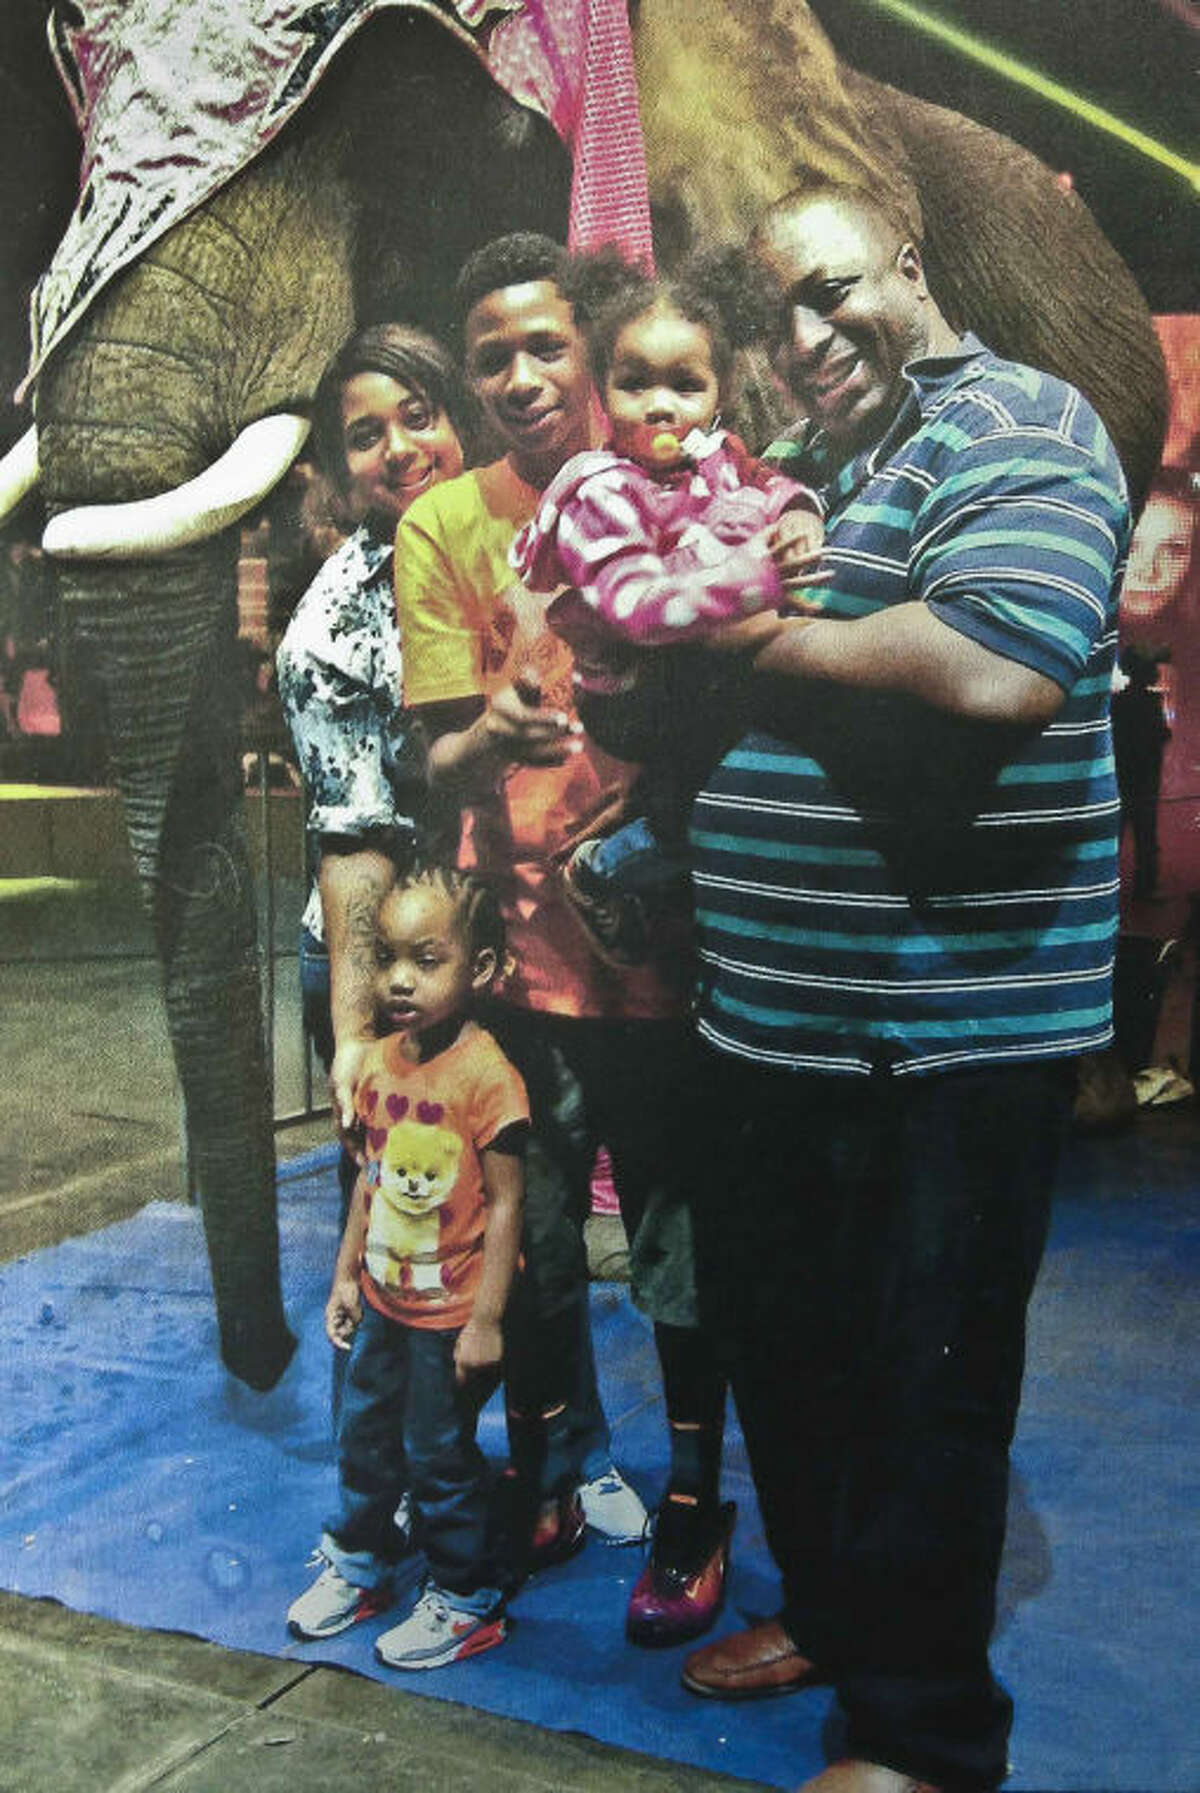 FILE- In this undated family file photo provided by the National Action Network, Saturday, July 19, 2014, Eric Garner, right, poses with his children during a family outing. On Friday, Aug. 1, 2014, the New York City medical examiner announced that the chokehold used on Garner by a white police officer caused his death. The death was ruled a homicide. (AP Photo/Family photo via National Action Network, File)